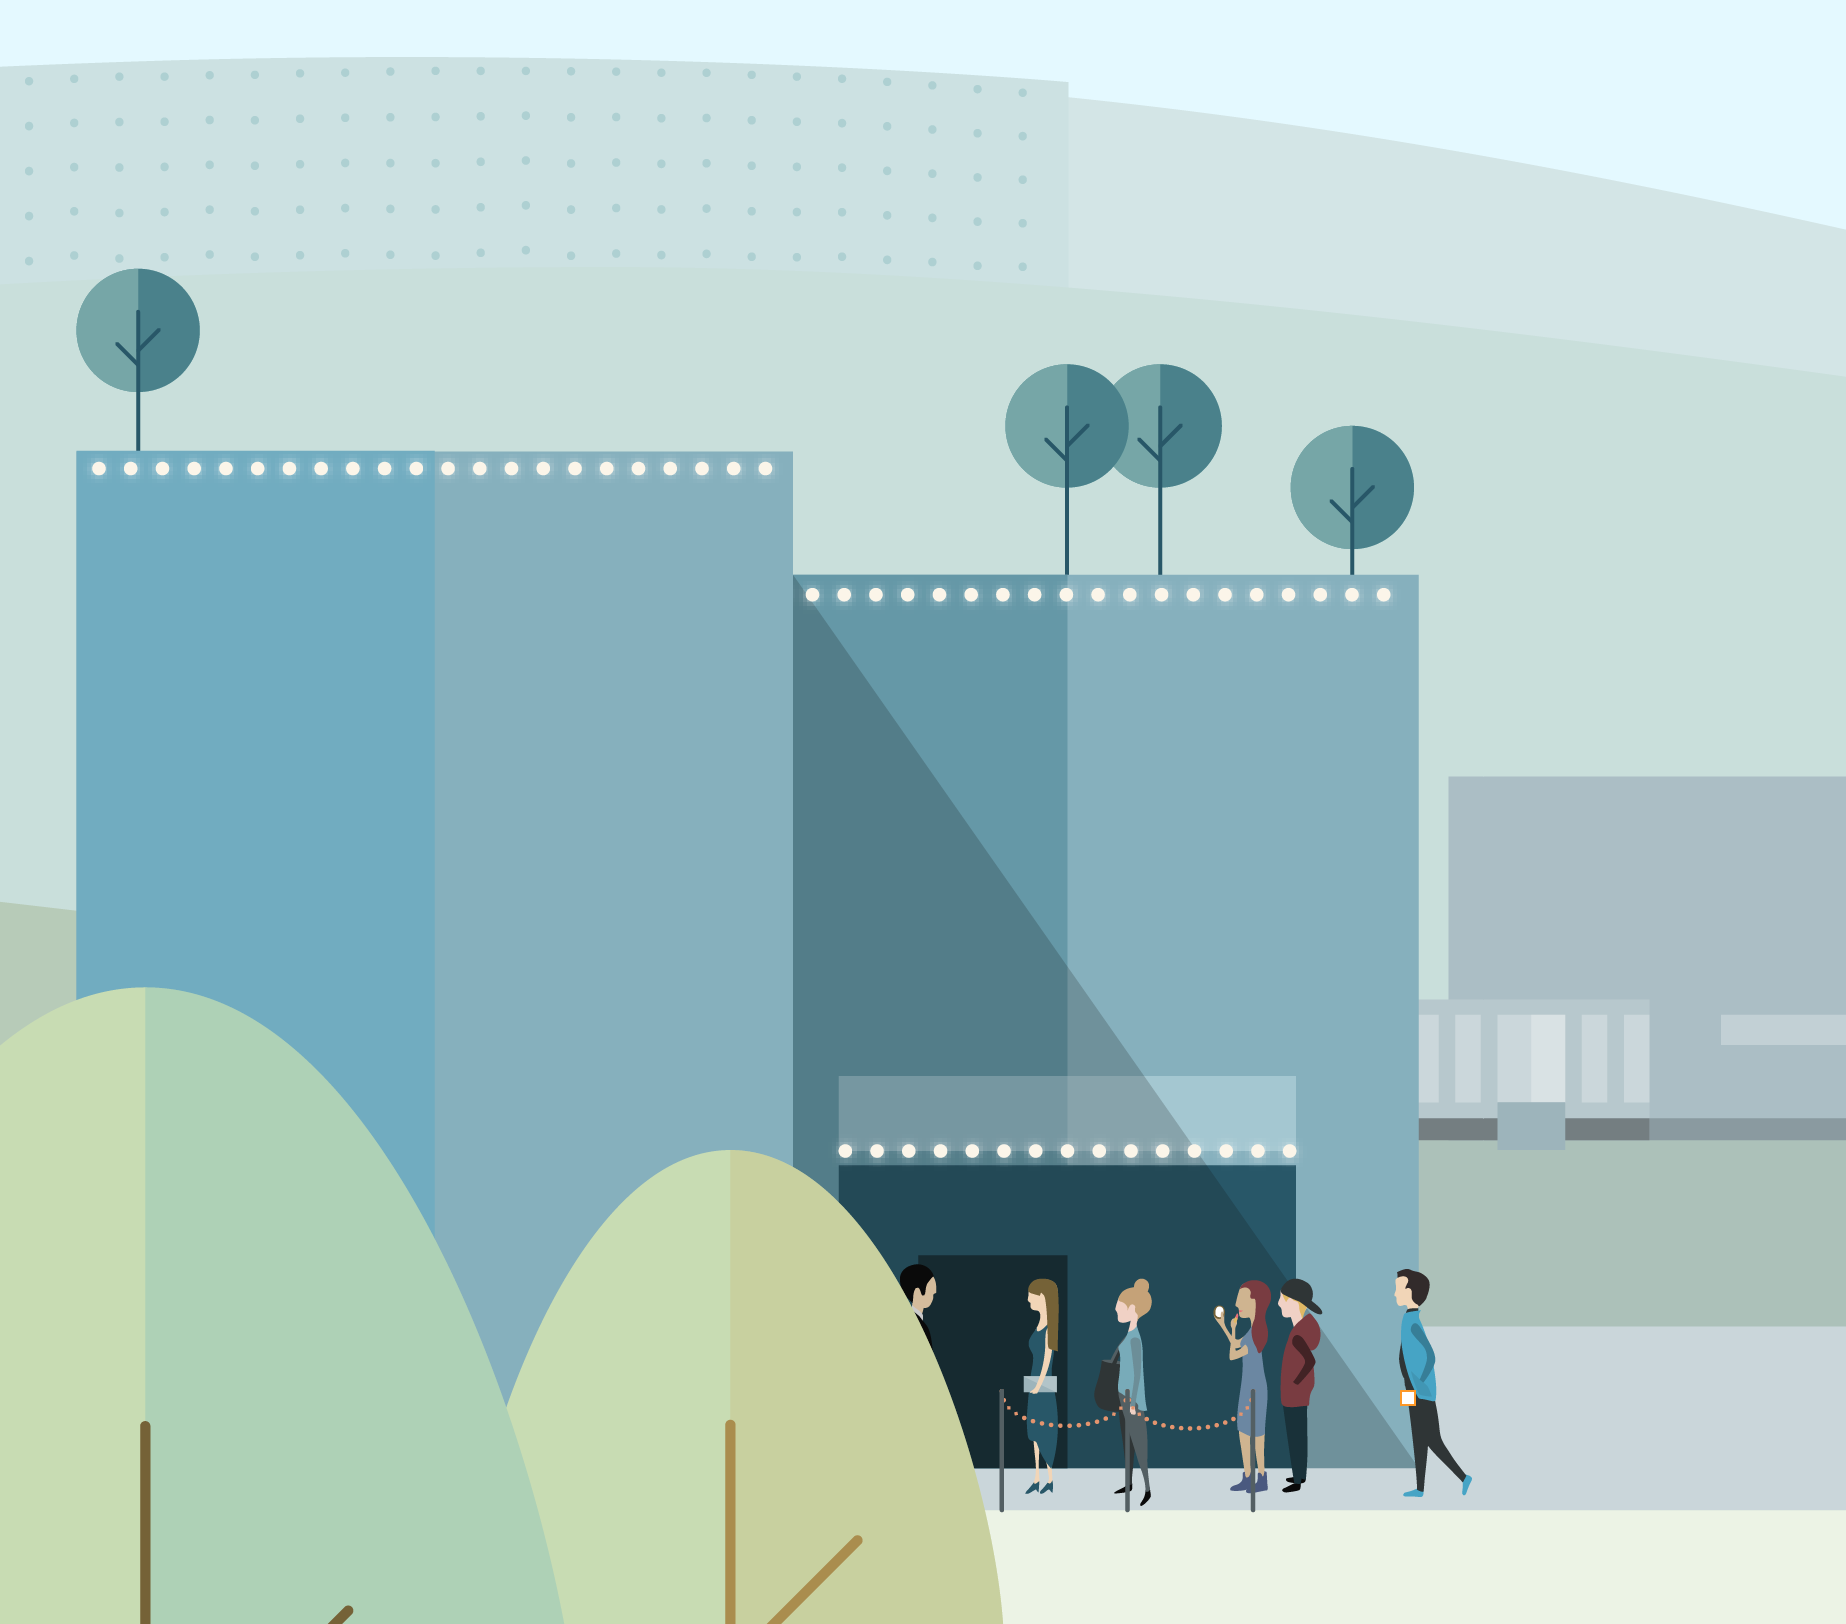 Vector Illustration detail: People in the queue